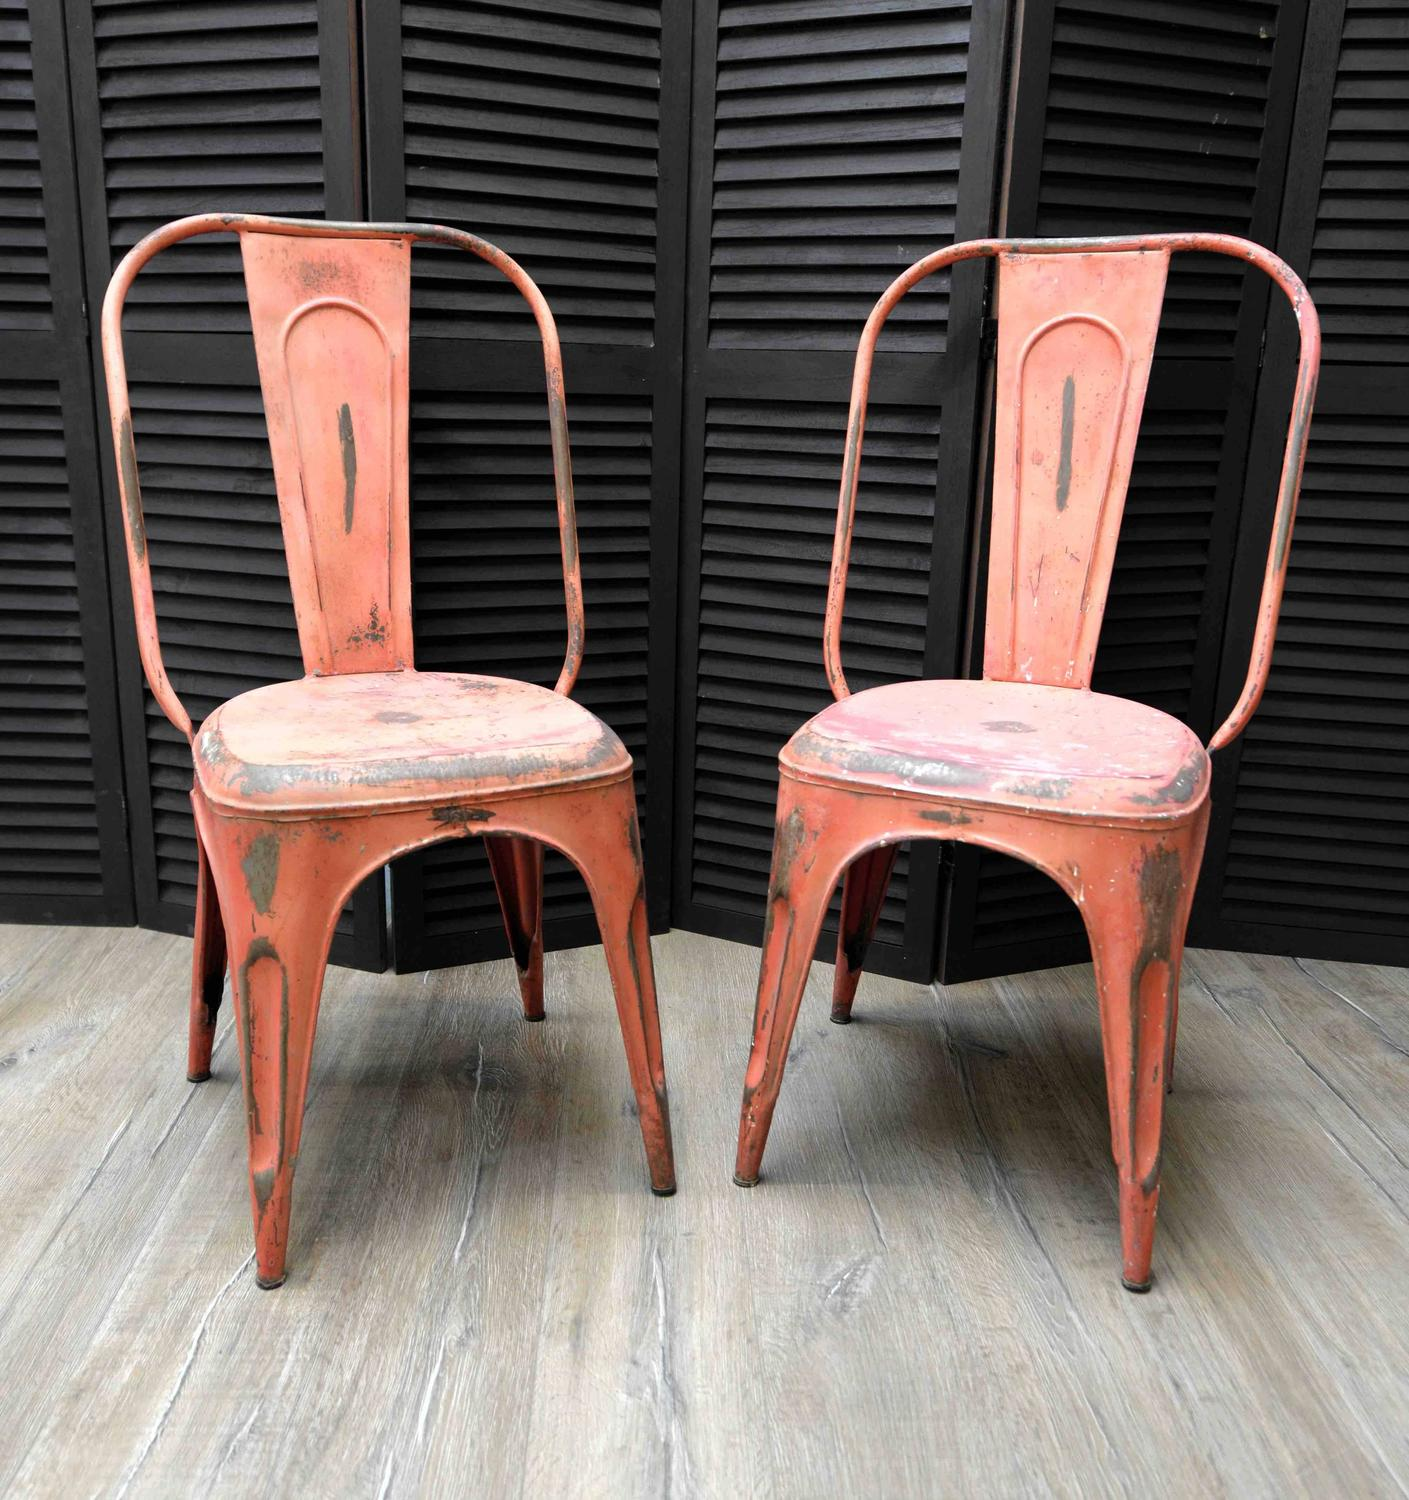 1950s French Metal Industrial Stacking Café Bistro Chairs